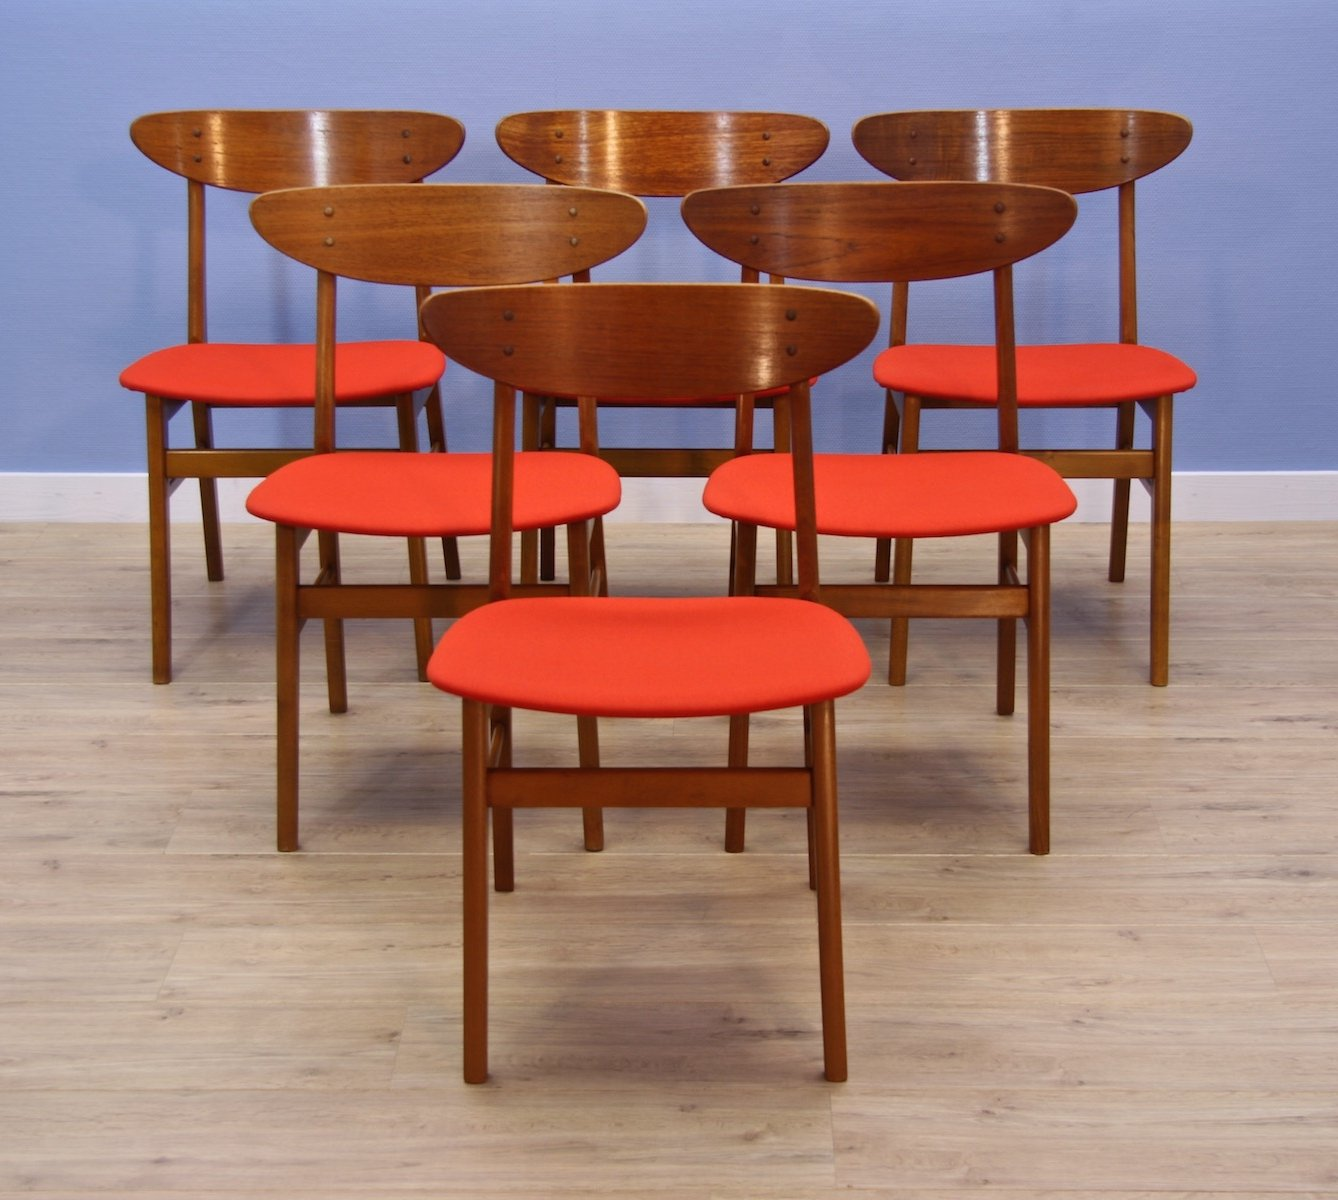 Peachy Set Of 6 Danish Dining Chairs In Teak By Farstrup 86796 Squirreltailoven Fun Painted Chair Ideas Images Squirreltailovenorg